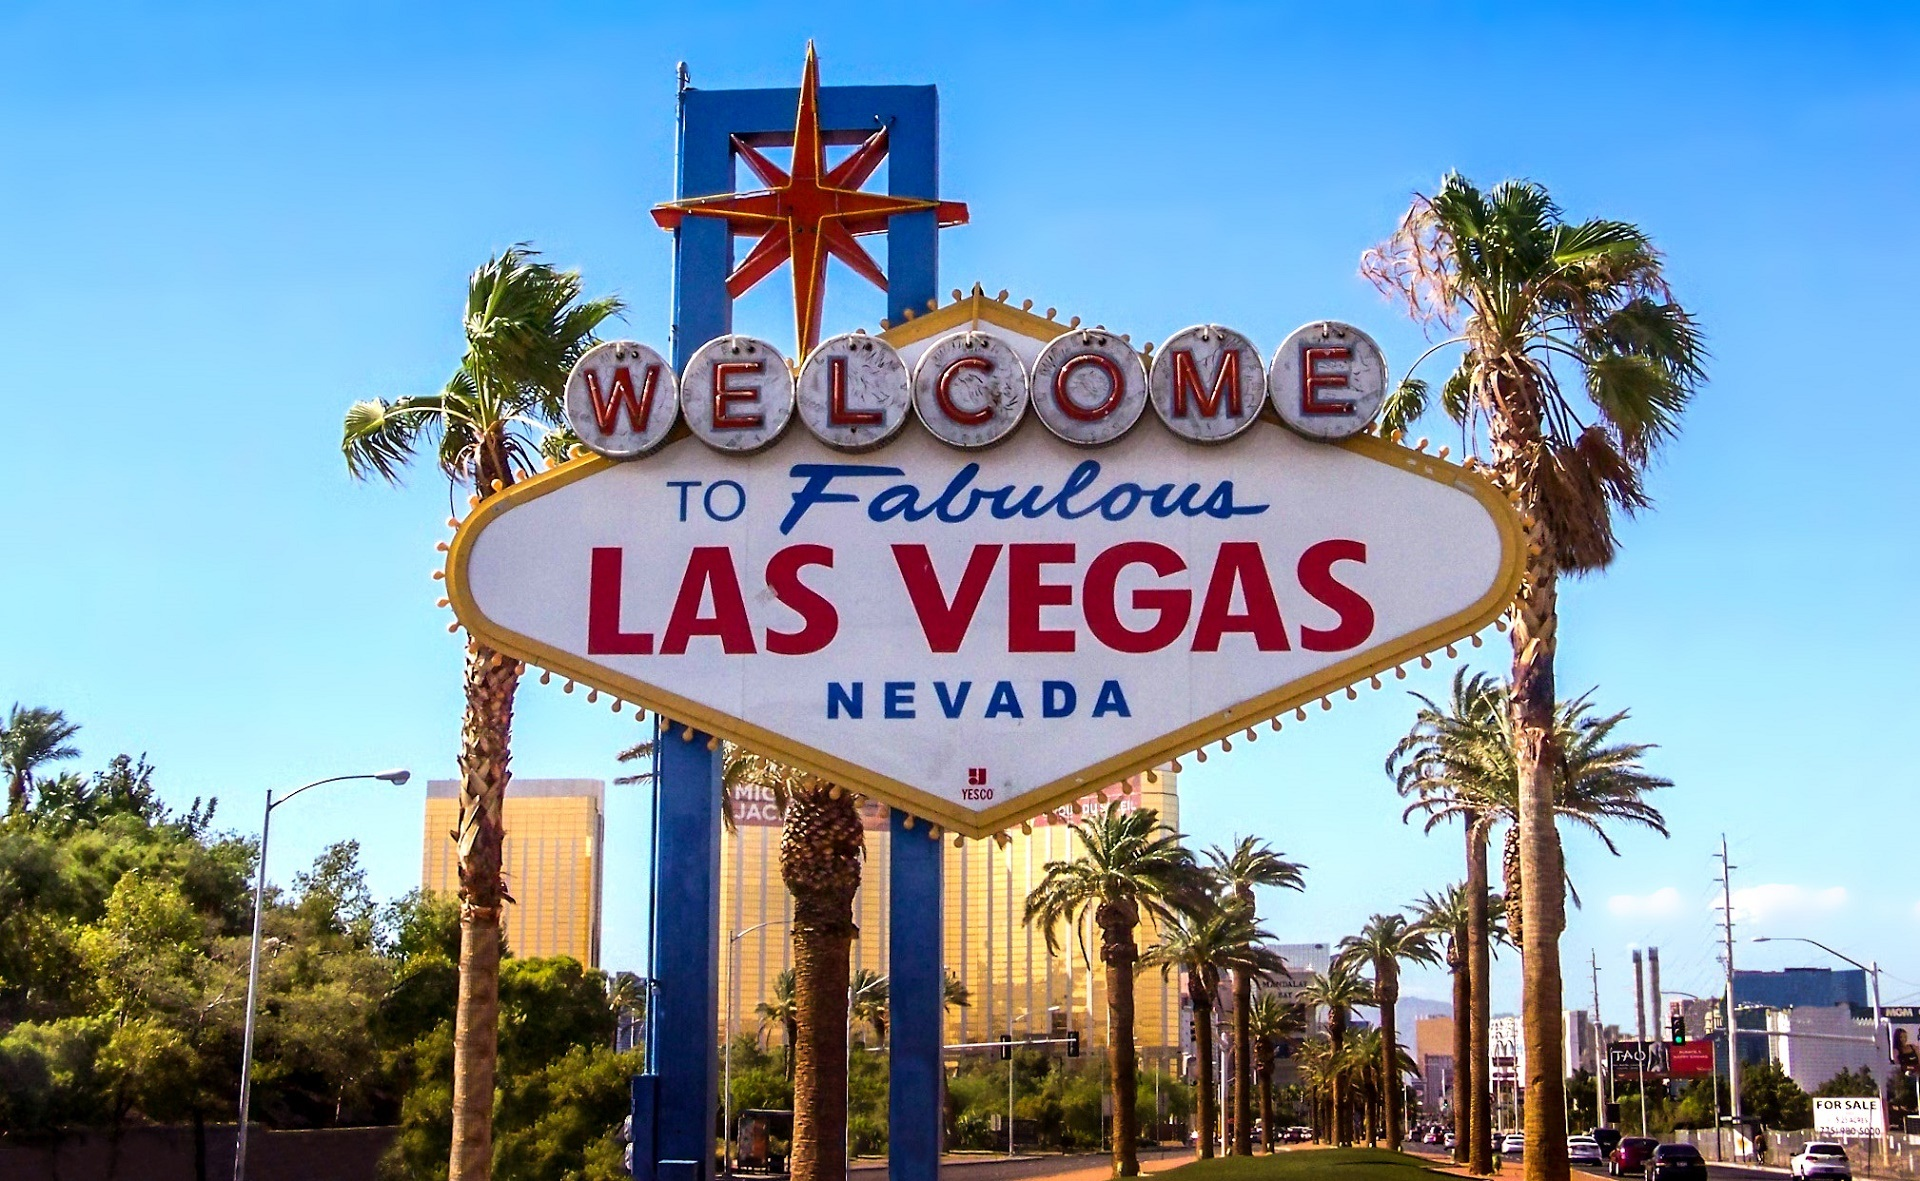 Welcome to Las Vegas. Buying a house in Las Vegas and moving there is new beginning for you